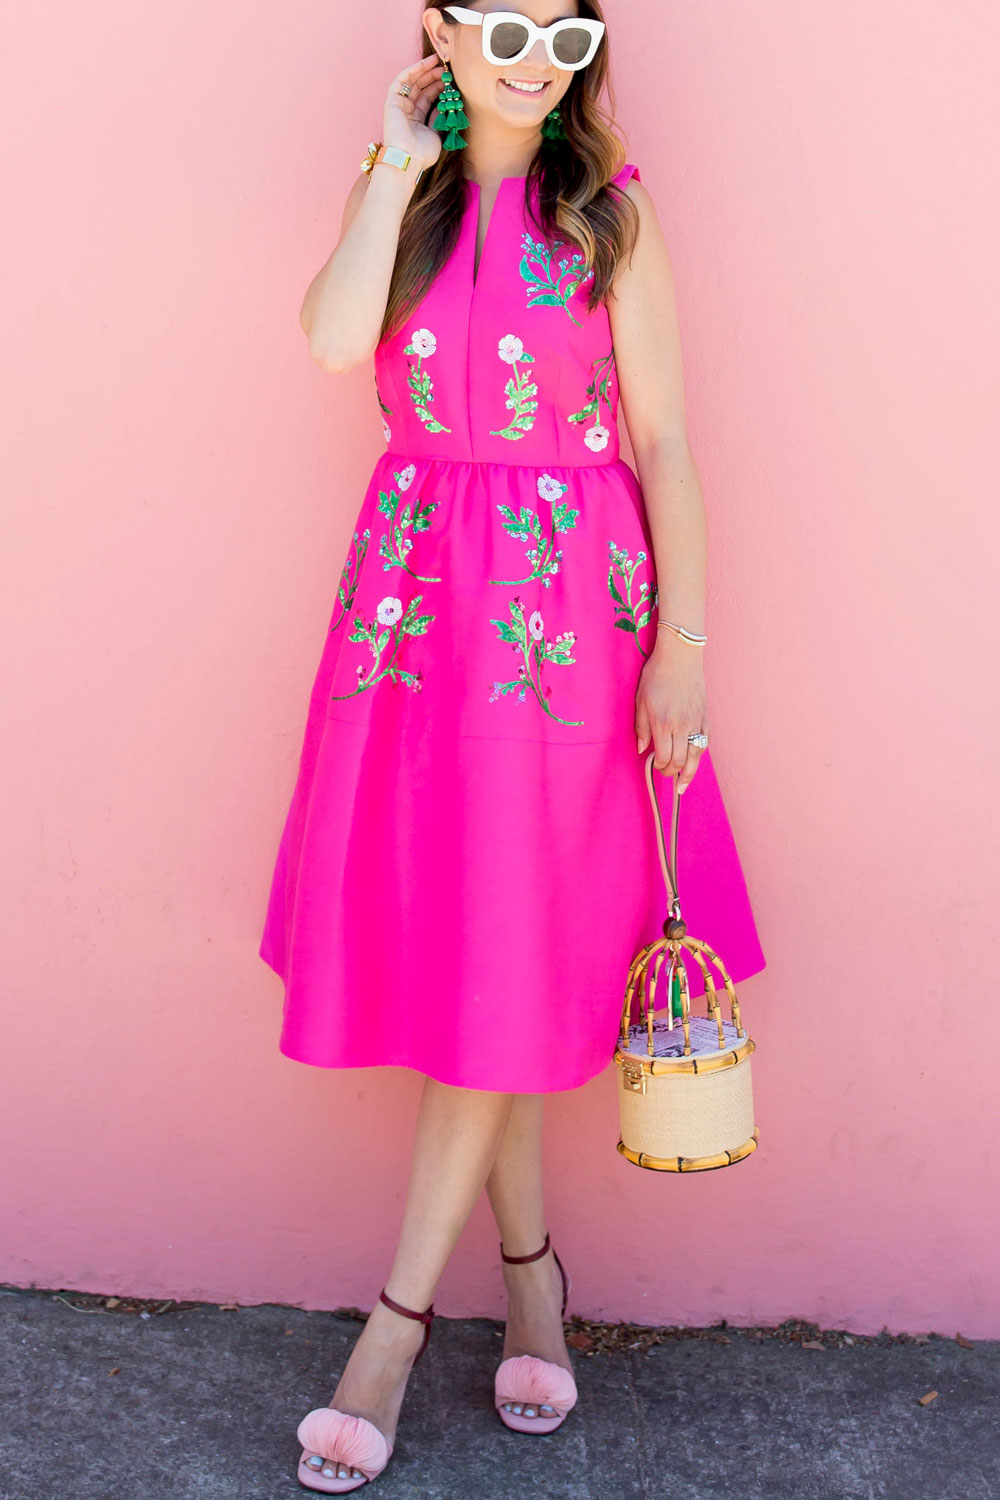 Kate Spade Floral Embellished Dress